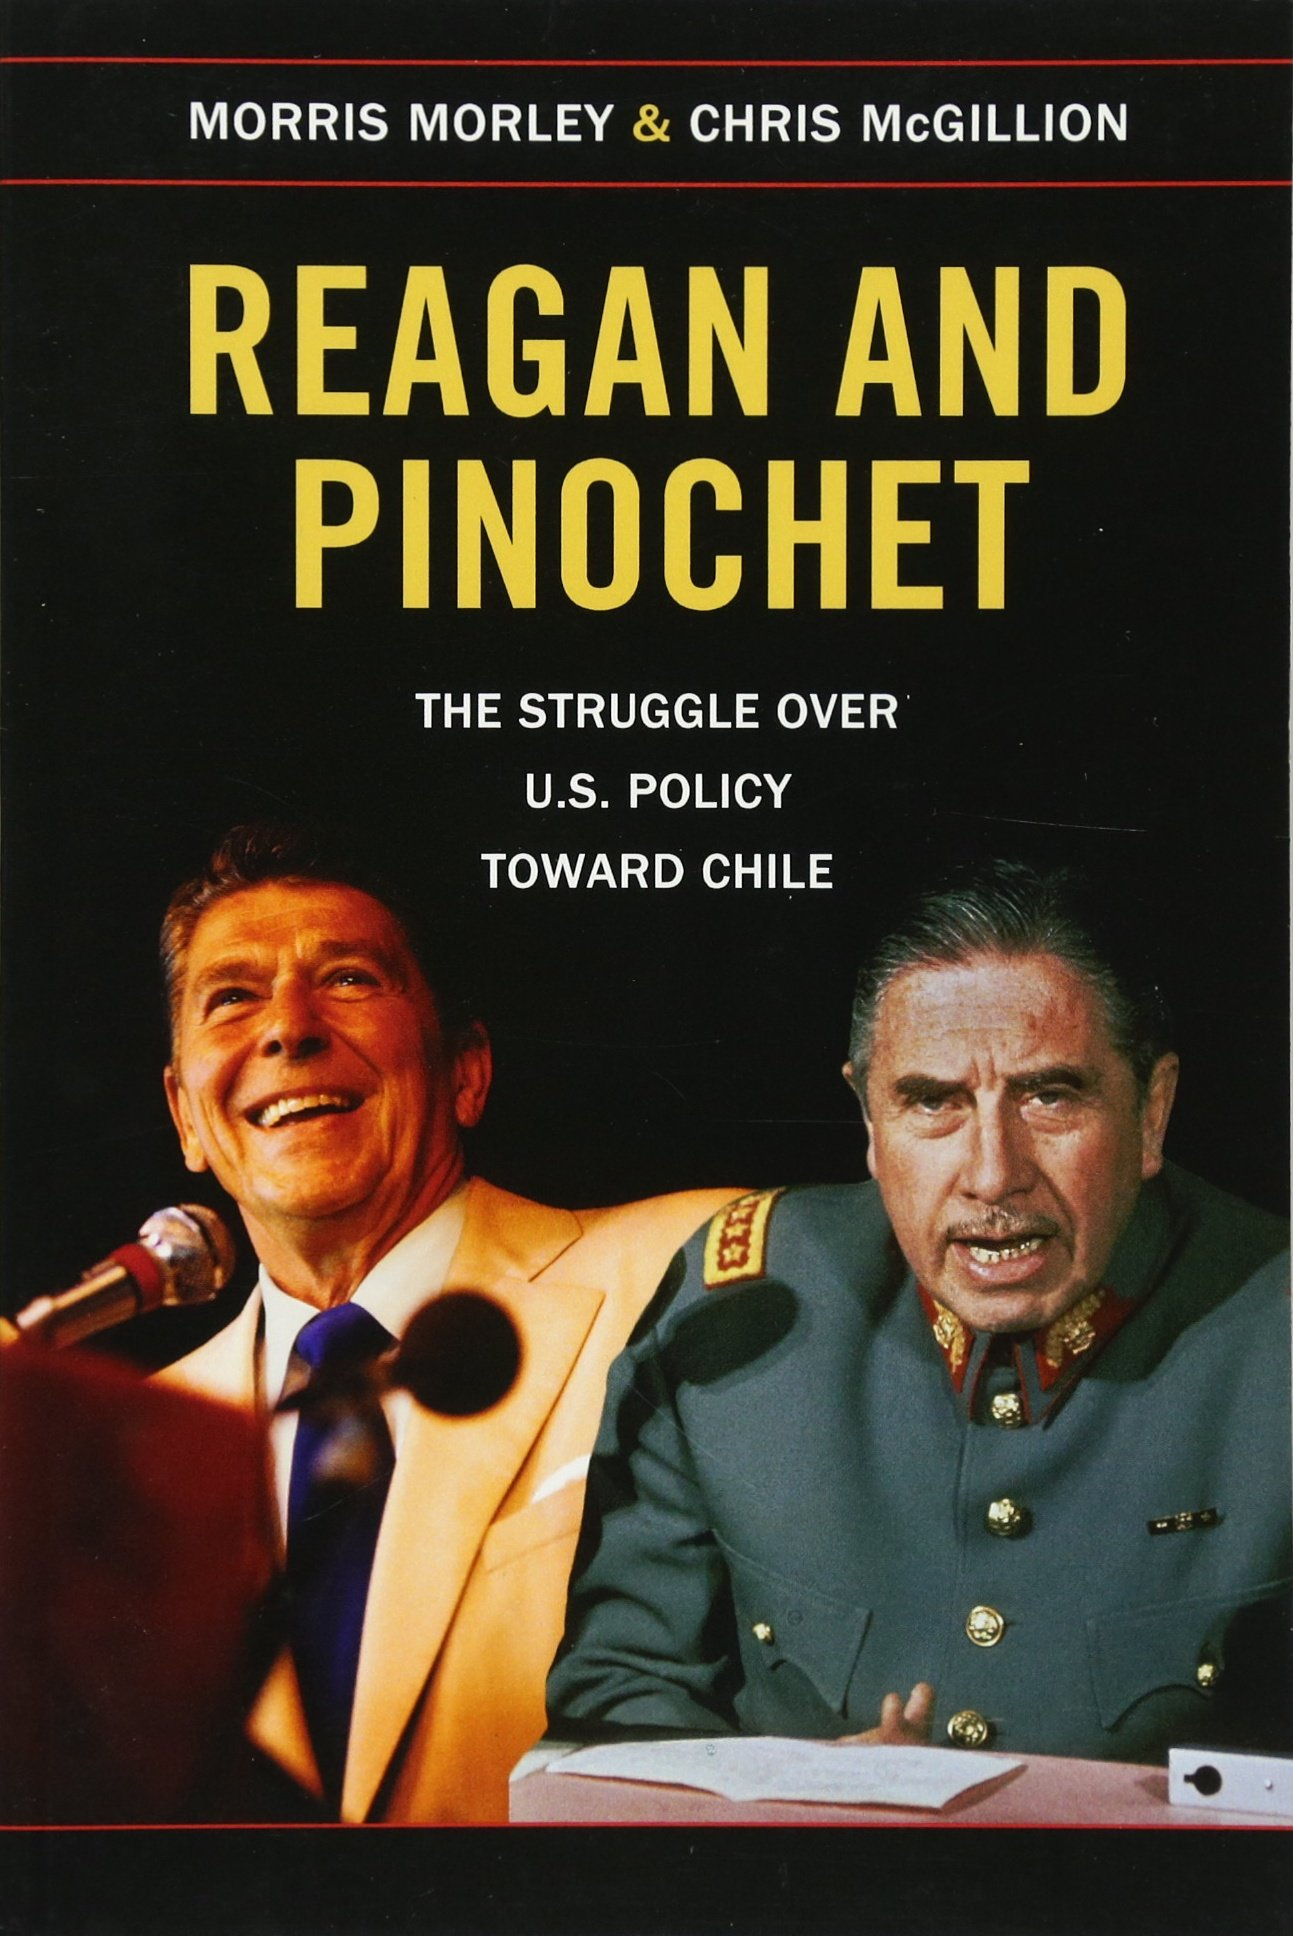 Reagan and Pinochet: The Struggle over US Policy toward Chile Paperback – February 2, 2015